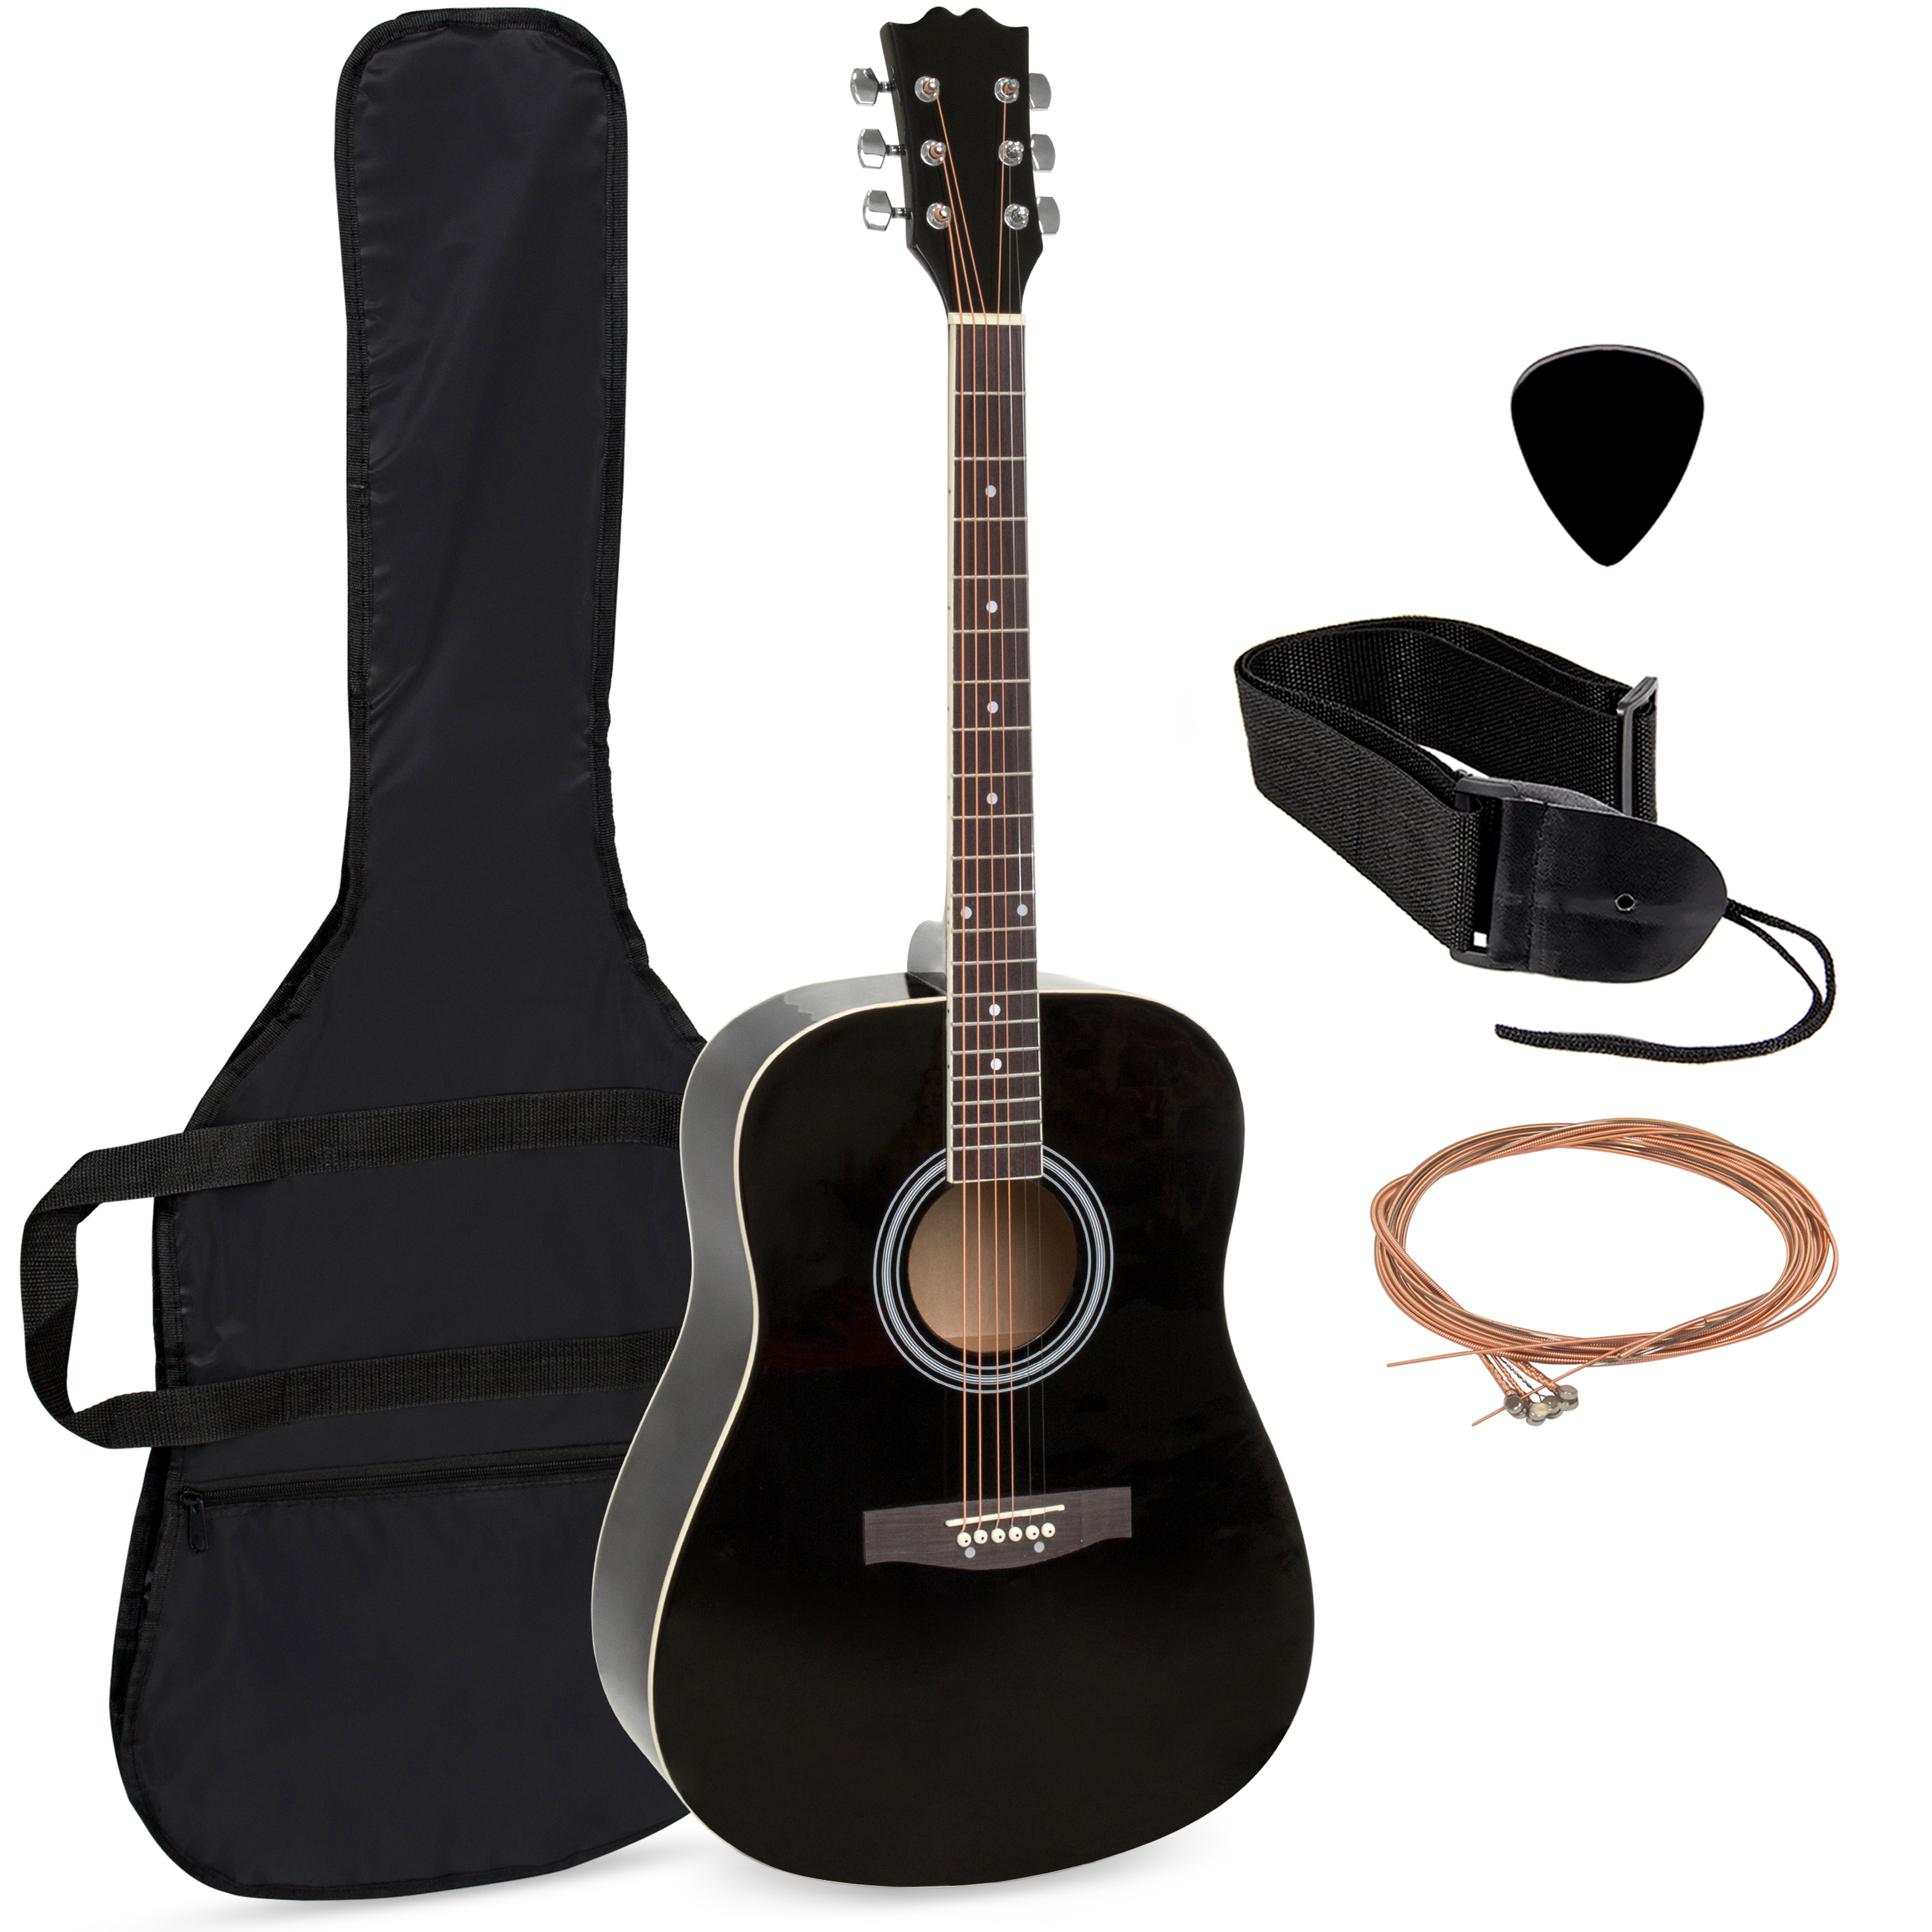 "Best Choice Products 41"" Acoustic Guitar Natural Includes Guitar Case, Strap (Black) by"